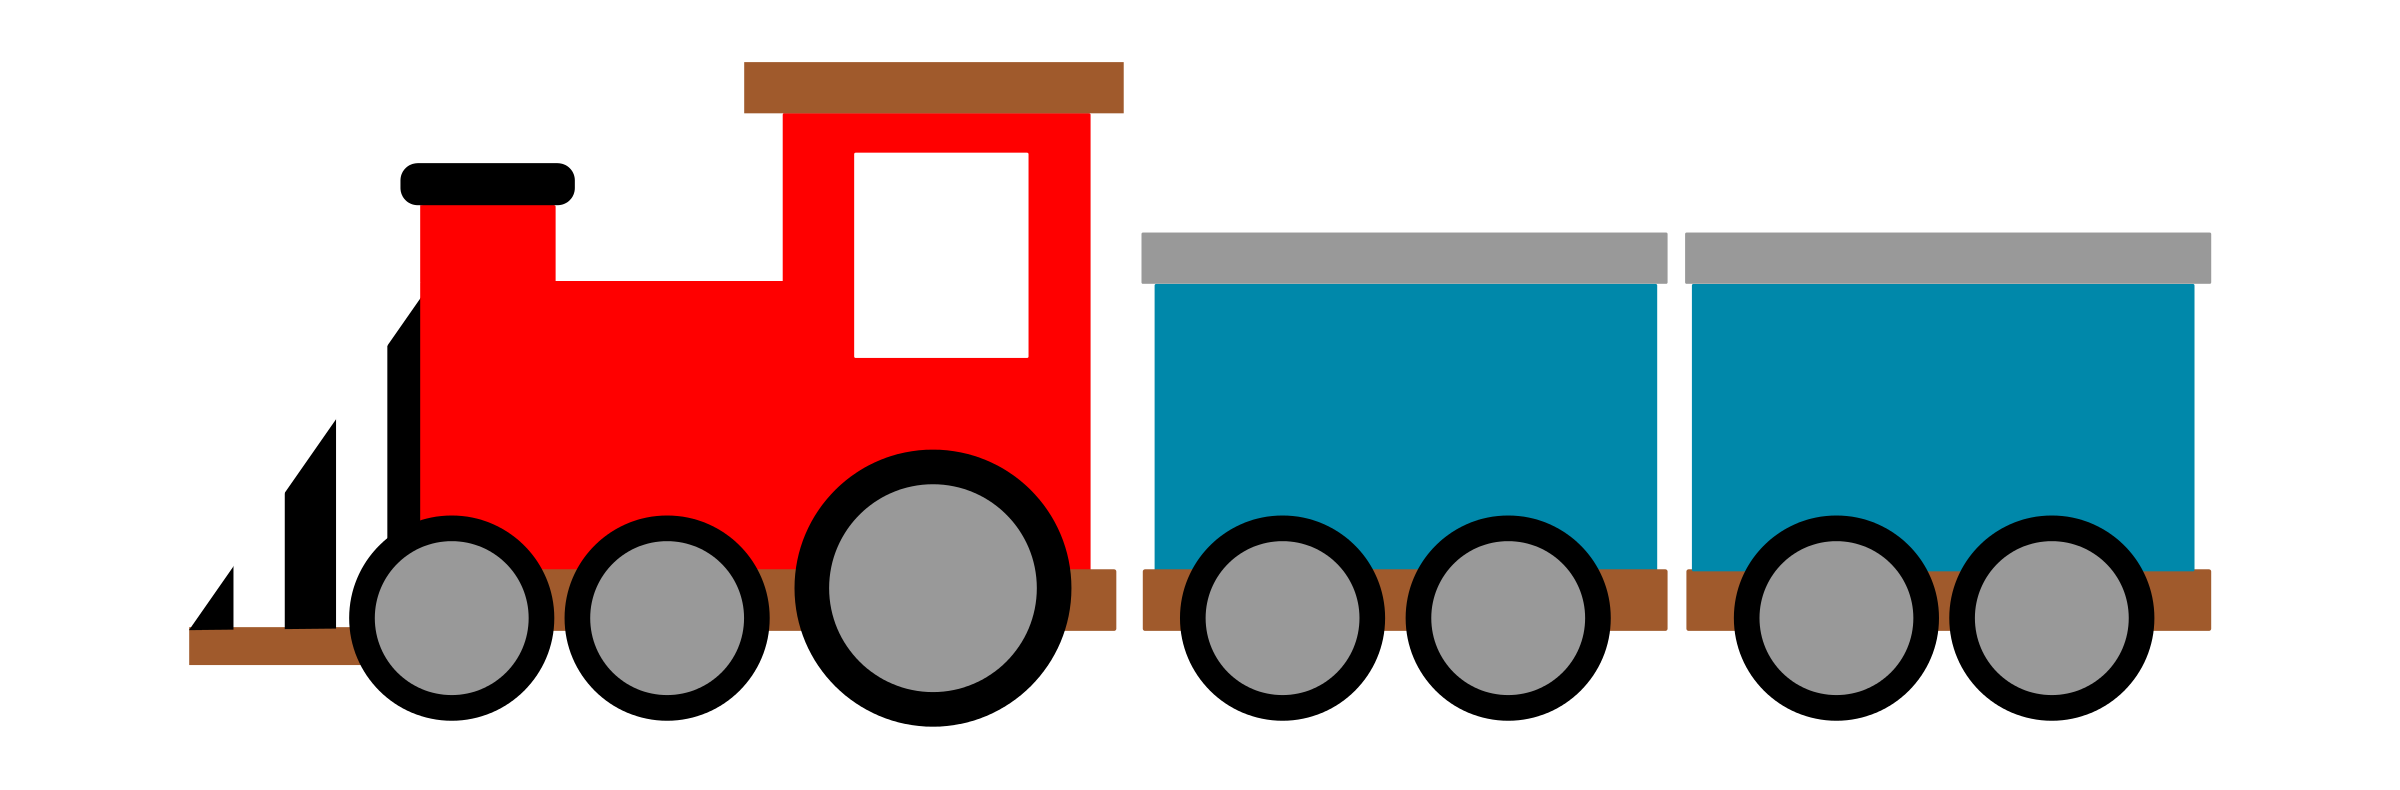 train clipart png